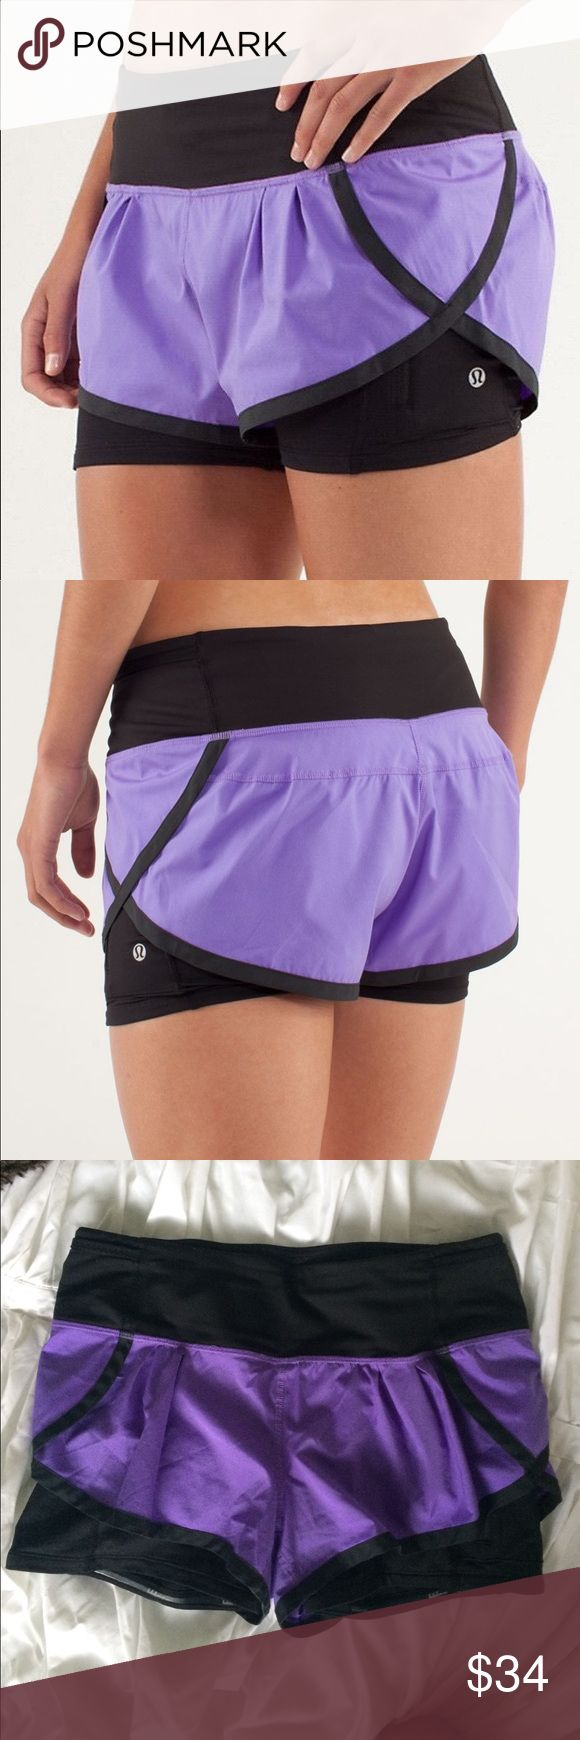 Lululemon speed squad running shorts sz 6 purple In perfect condition- size 6- anti slip protection on inside of short so they don't ride up lululemon athletica Shorts